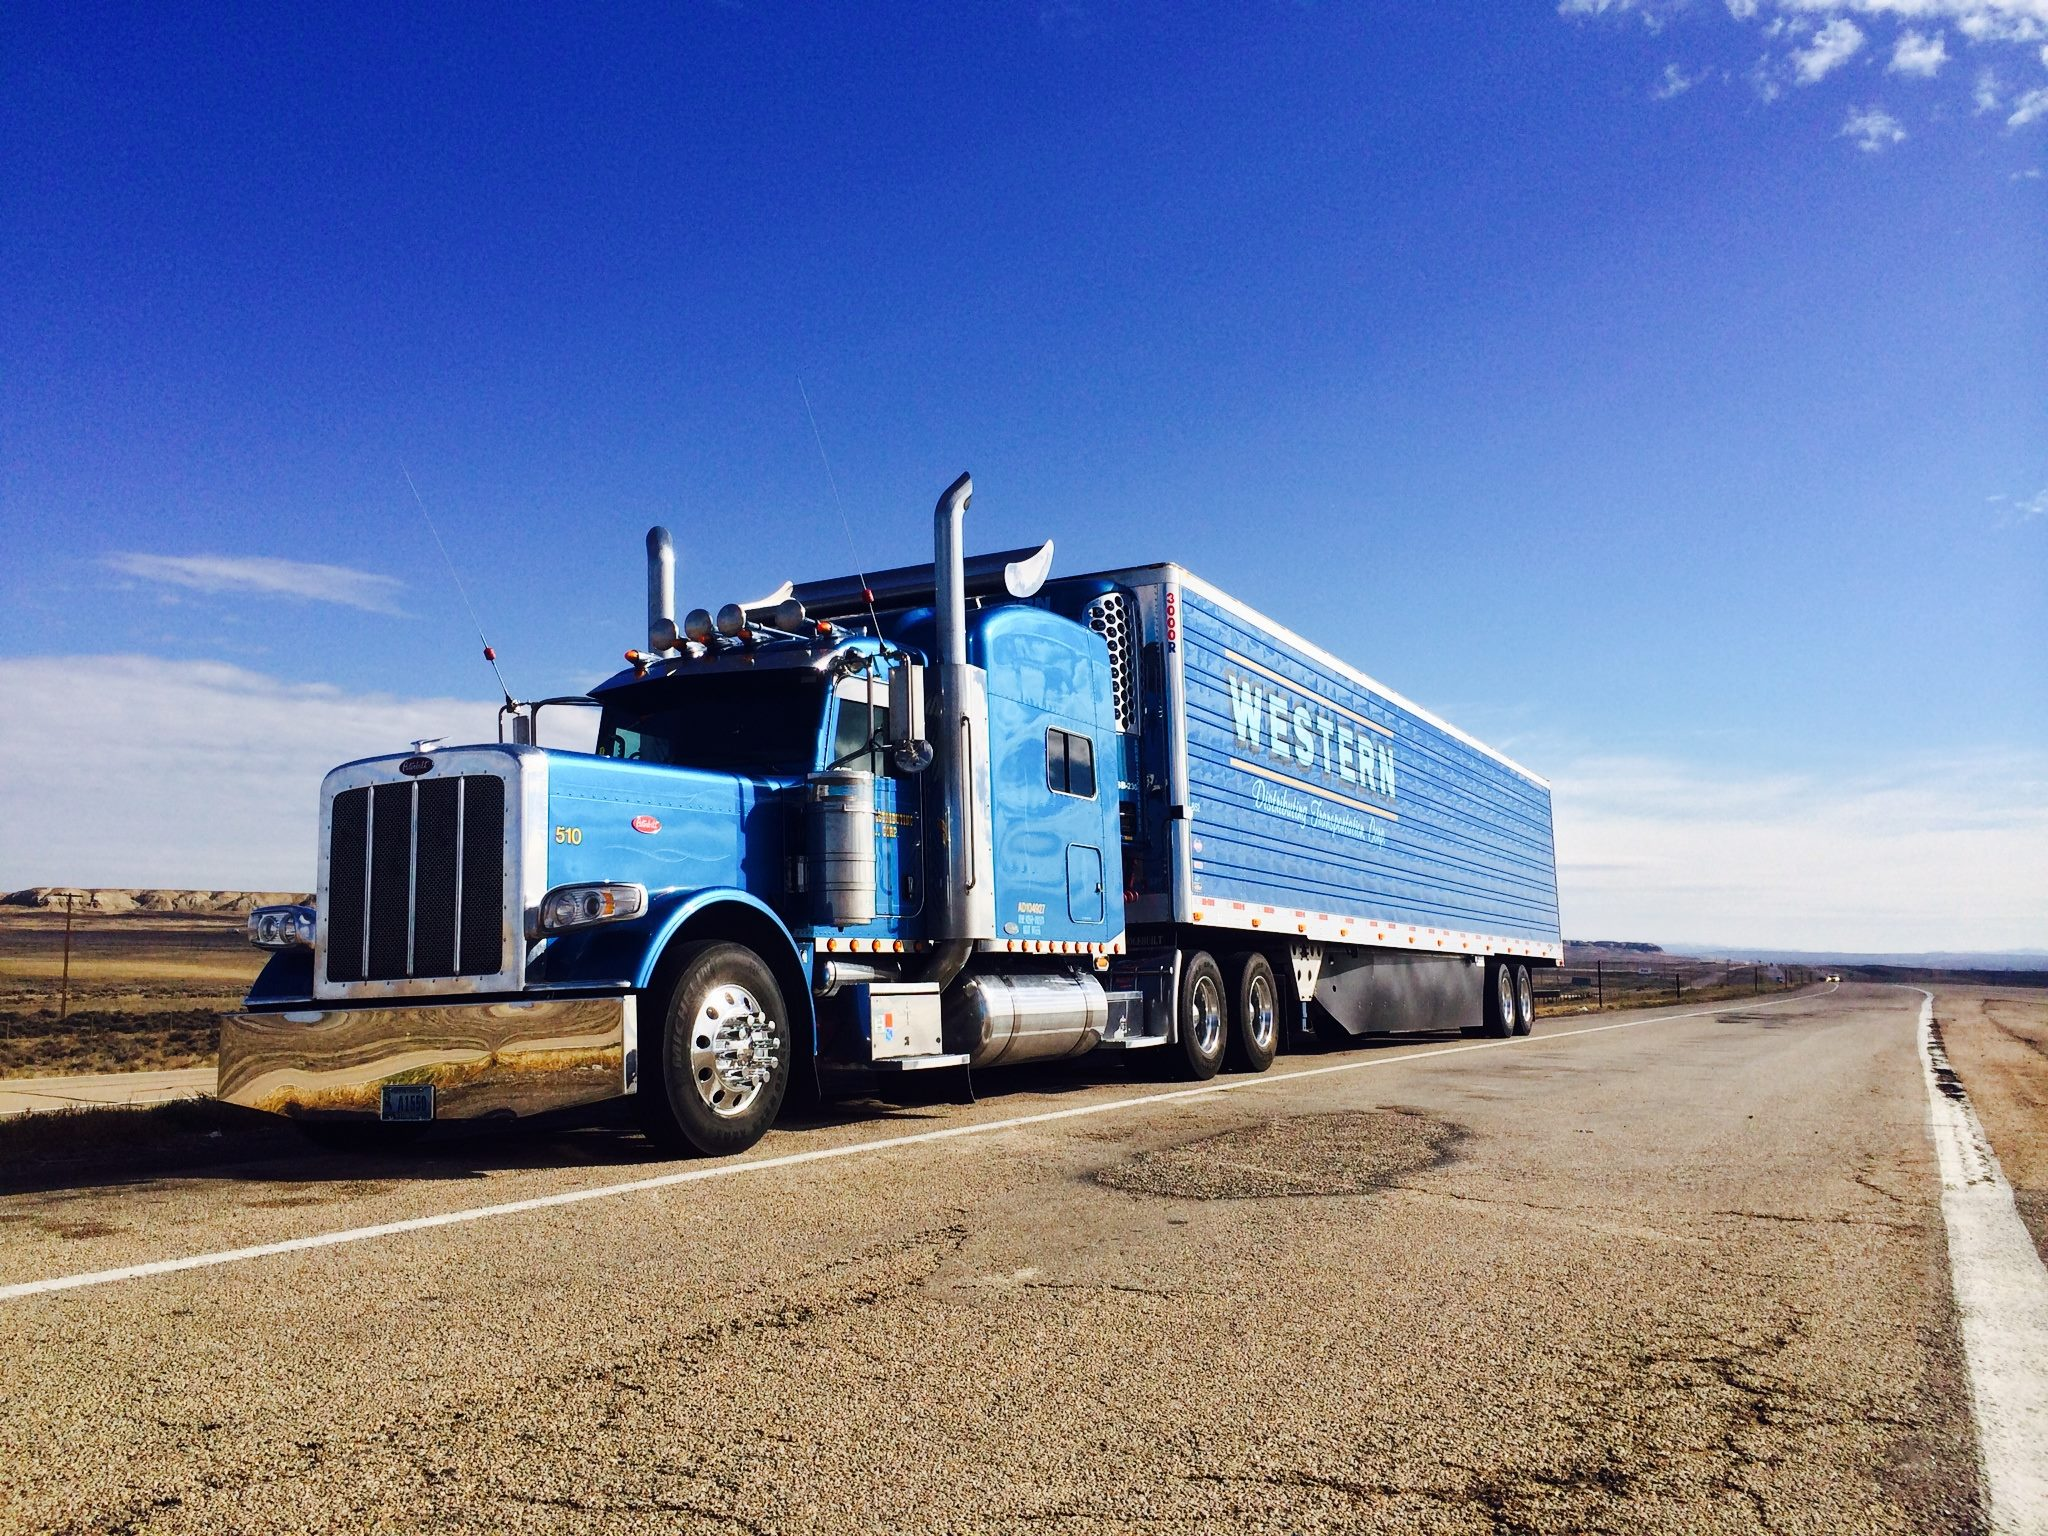 Western Distributing Moves Trip Documents Faster Via Vector